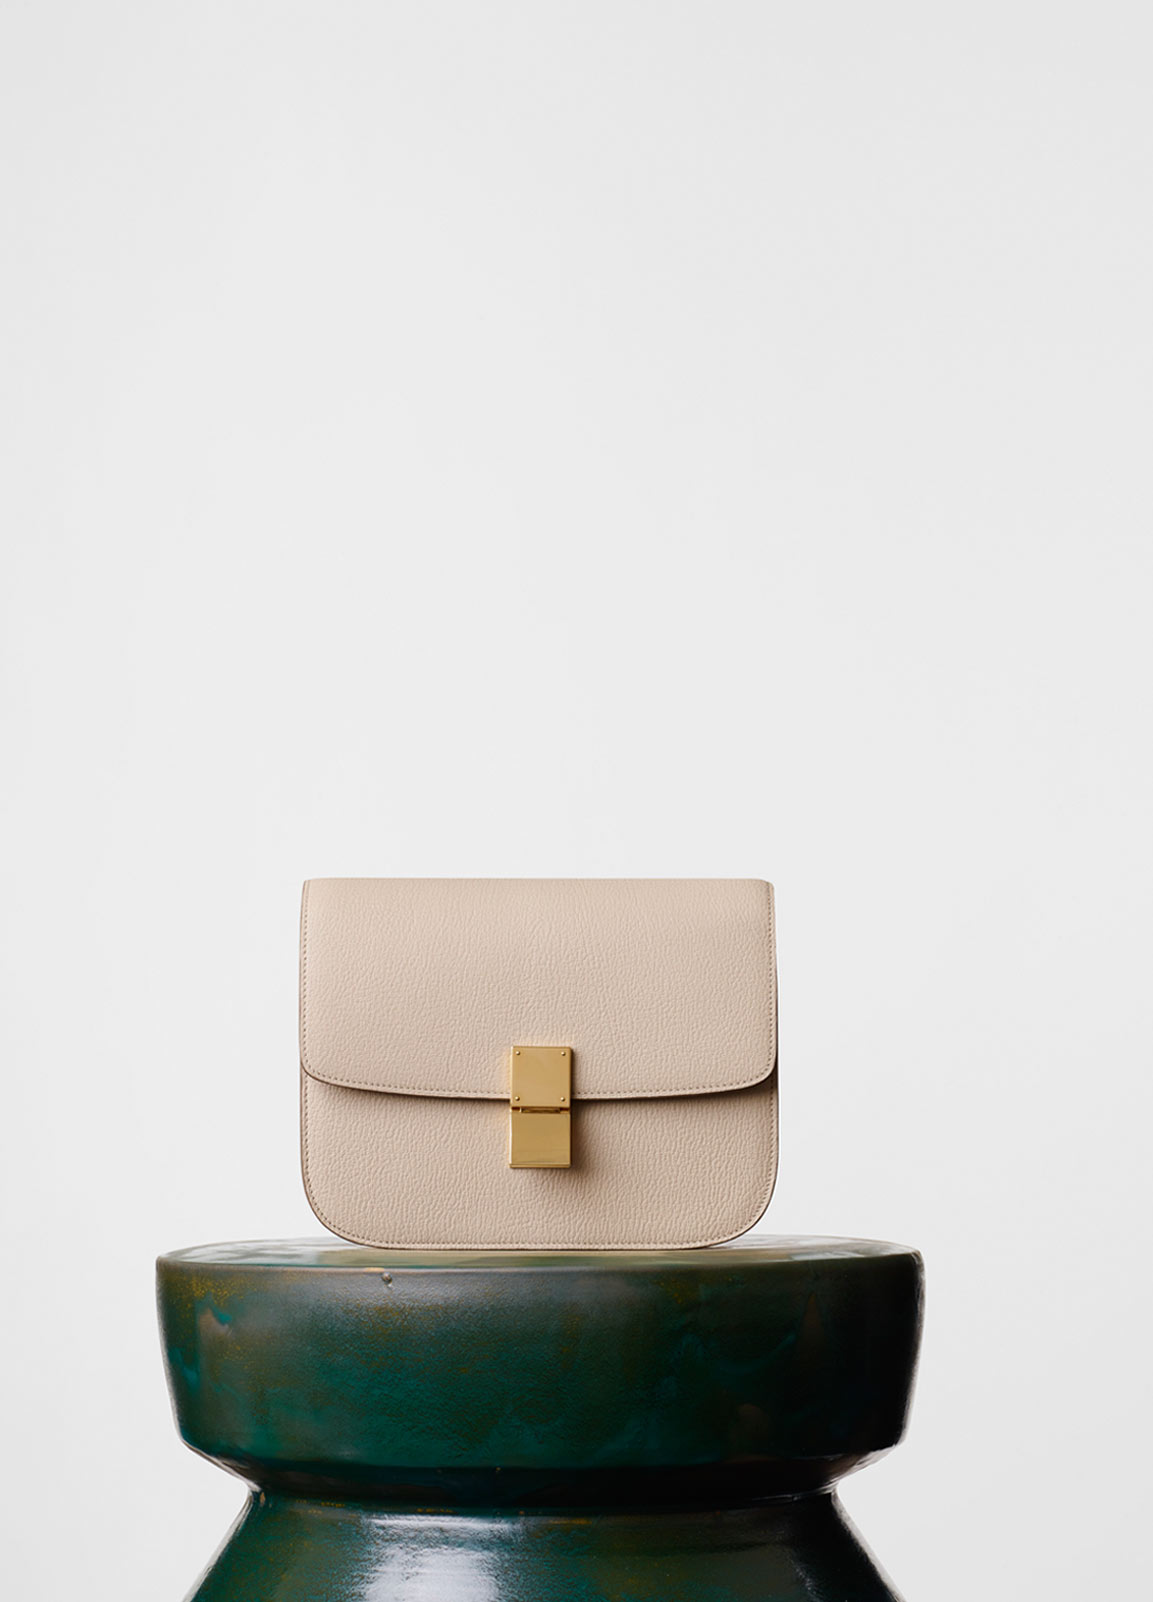 Celine 2015 Fall \u0026amp; Winter Bag Collection | Lollipuff